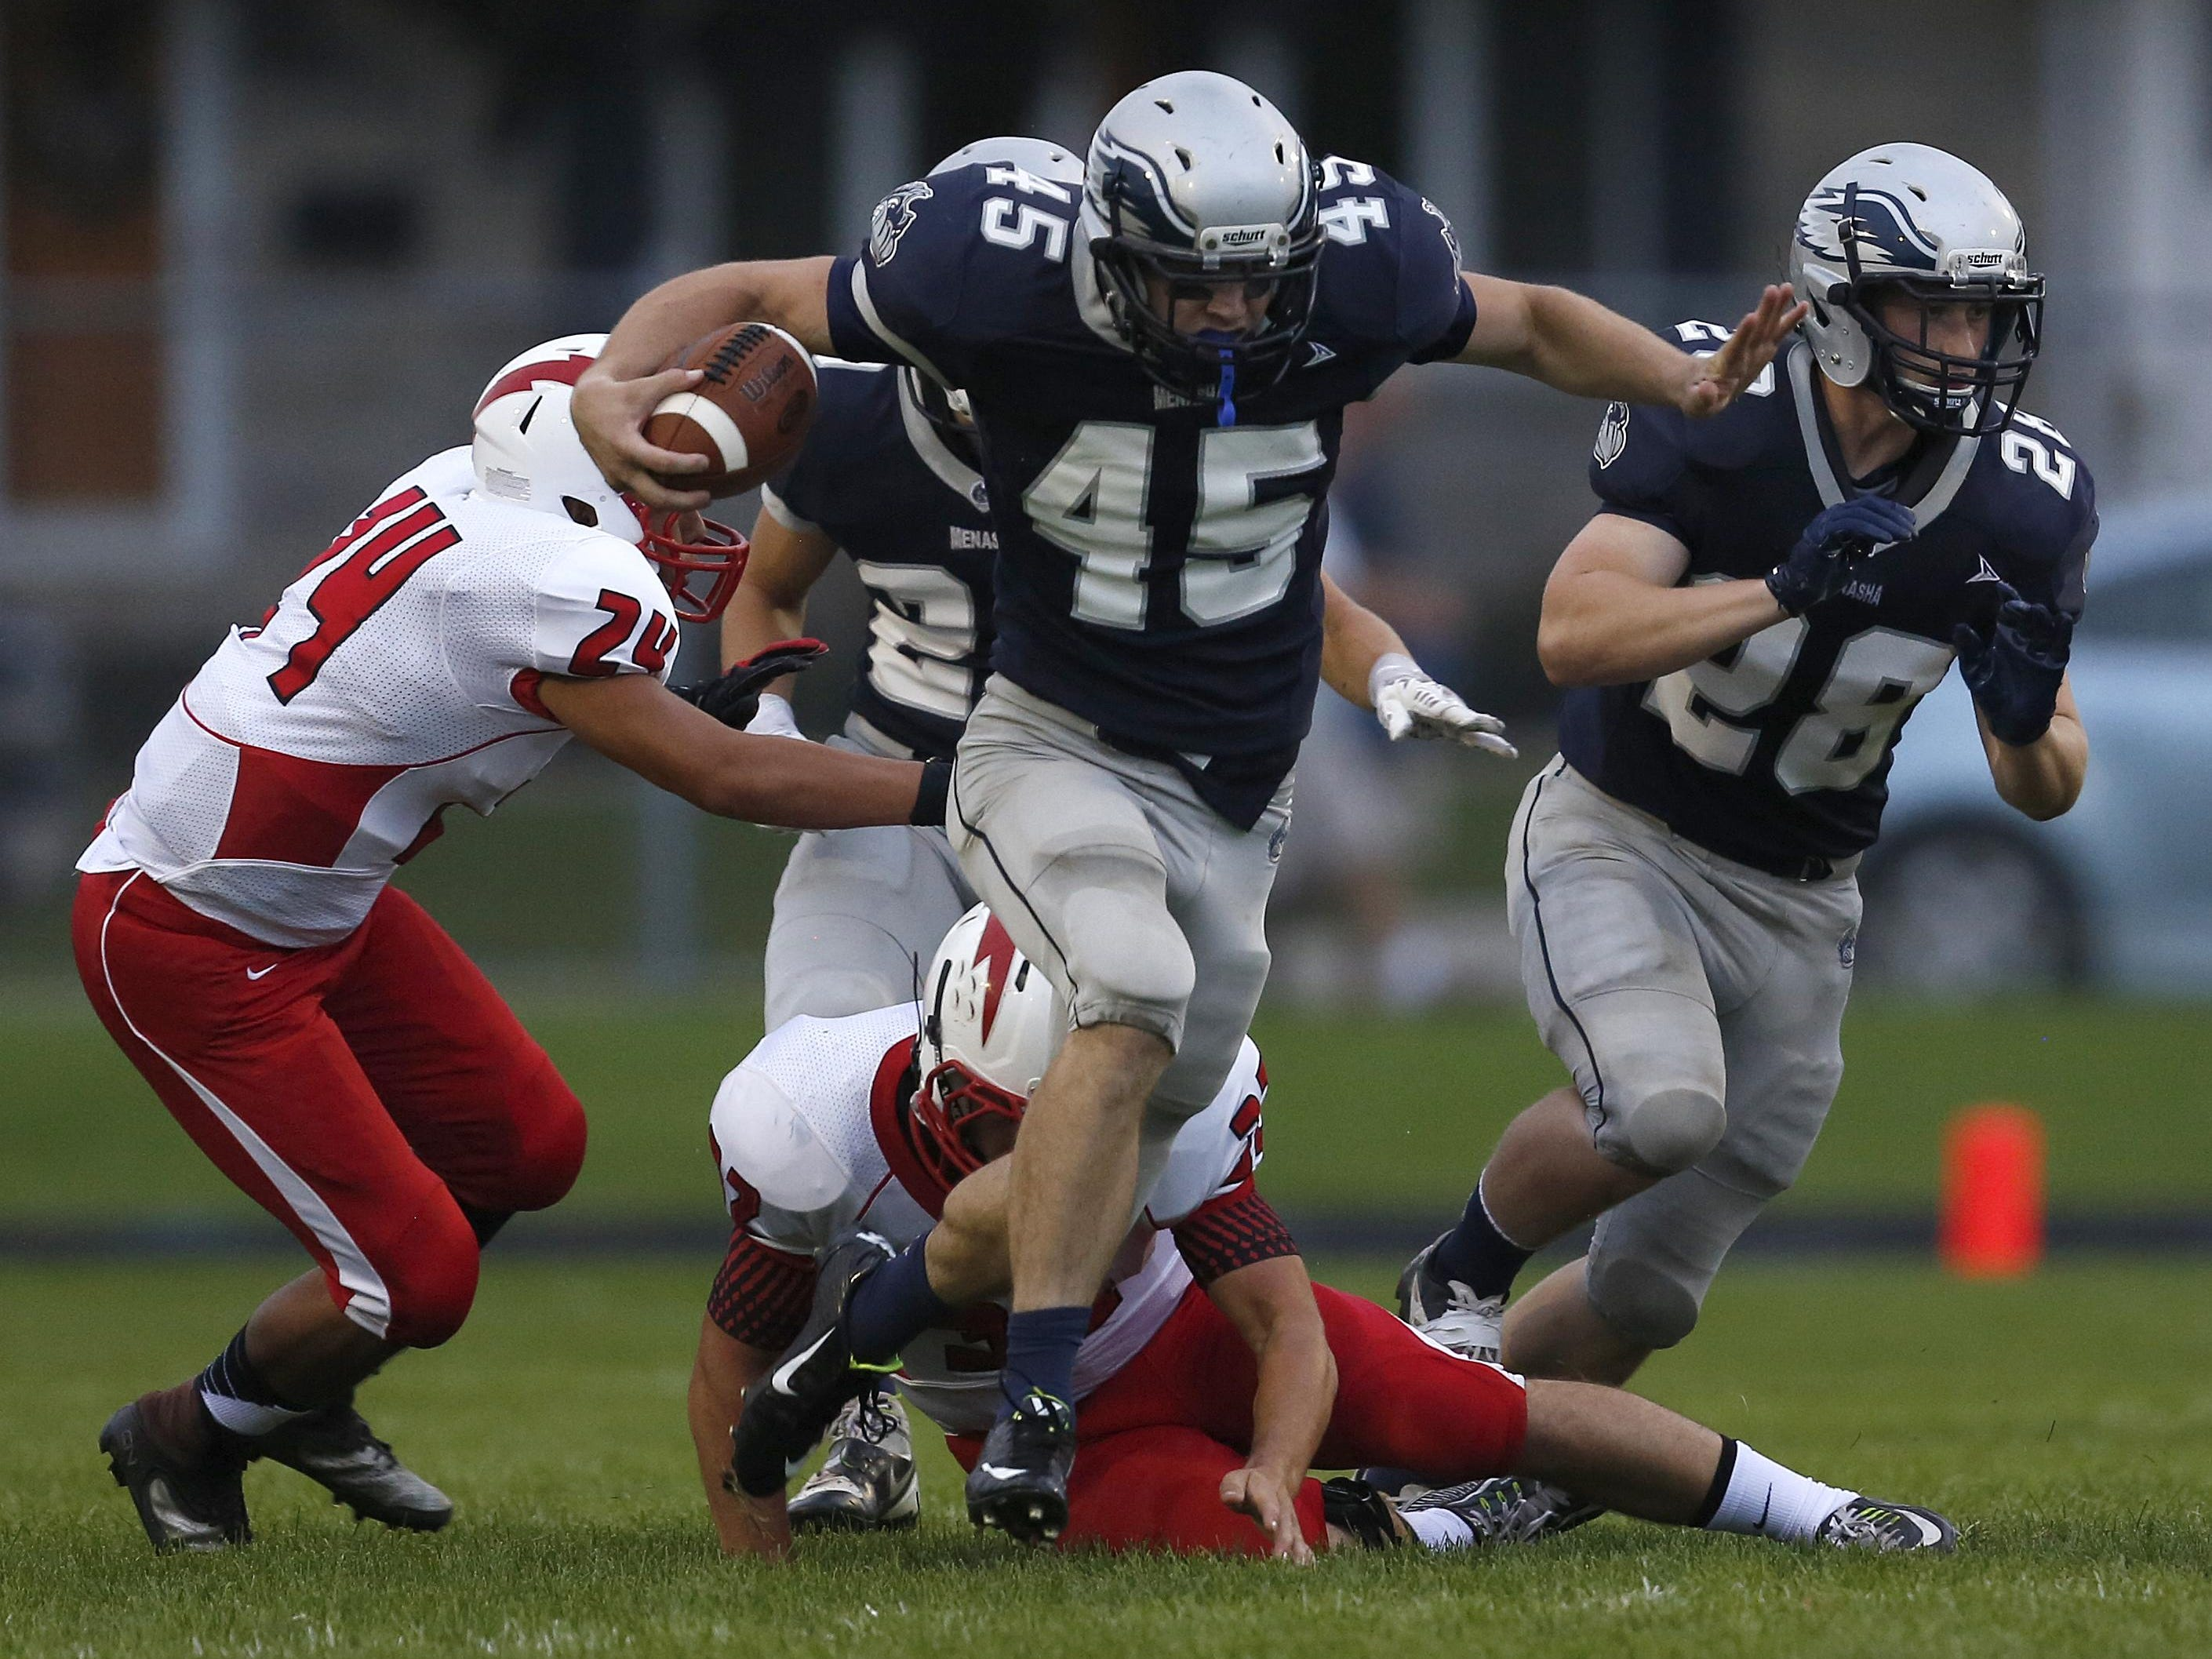 Austin Behm (45) is one of five Menasha players scheduled to play in Saturday's all-star game.